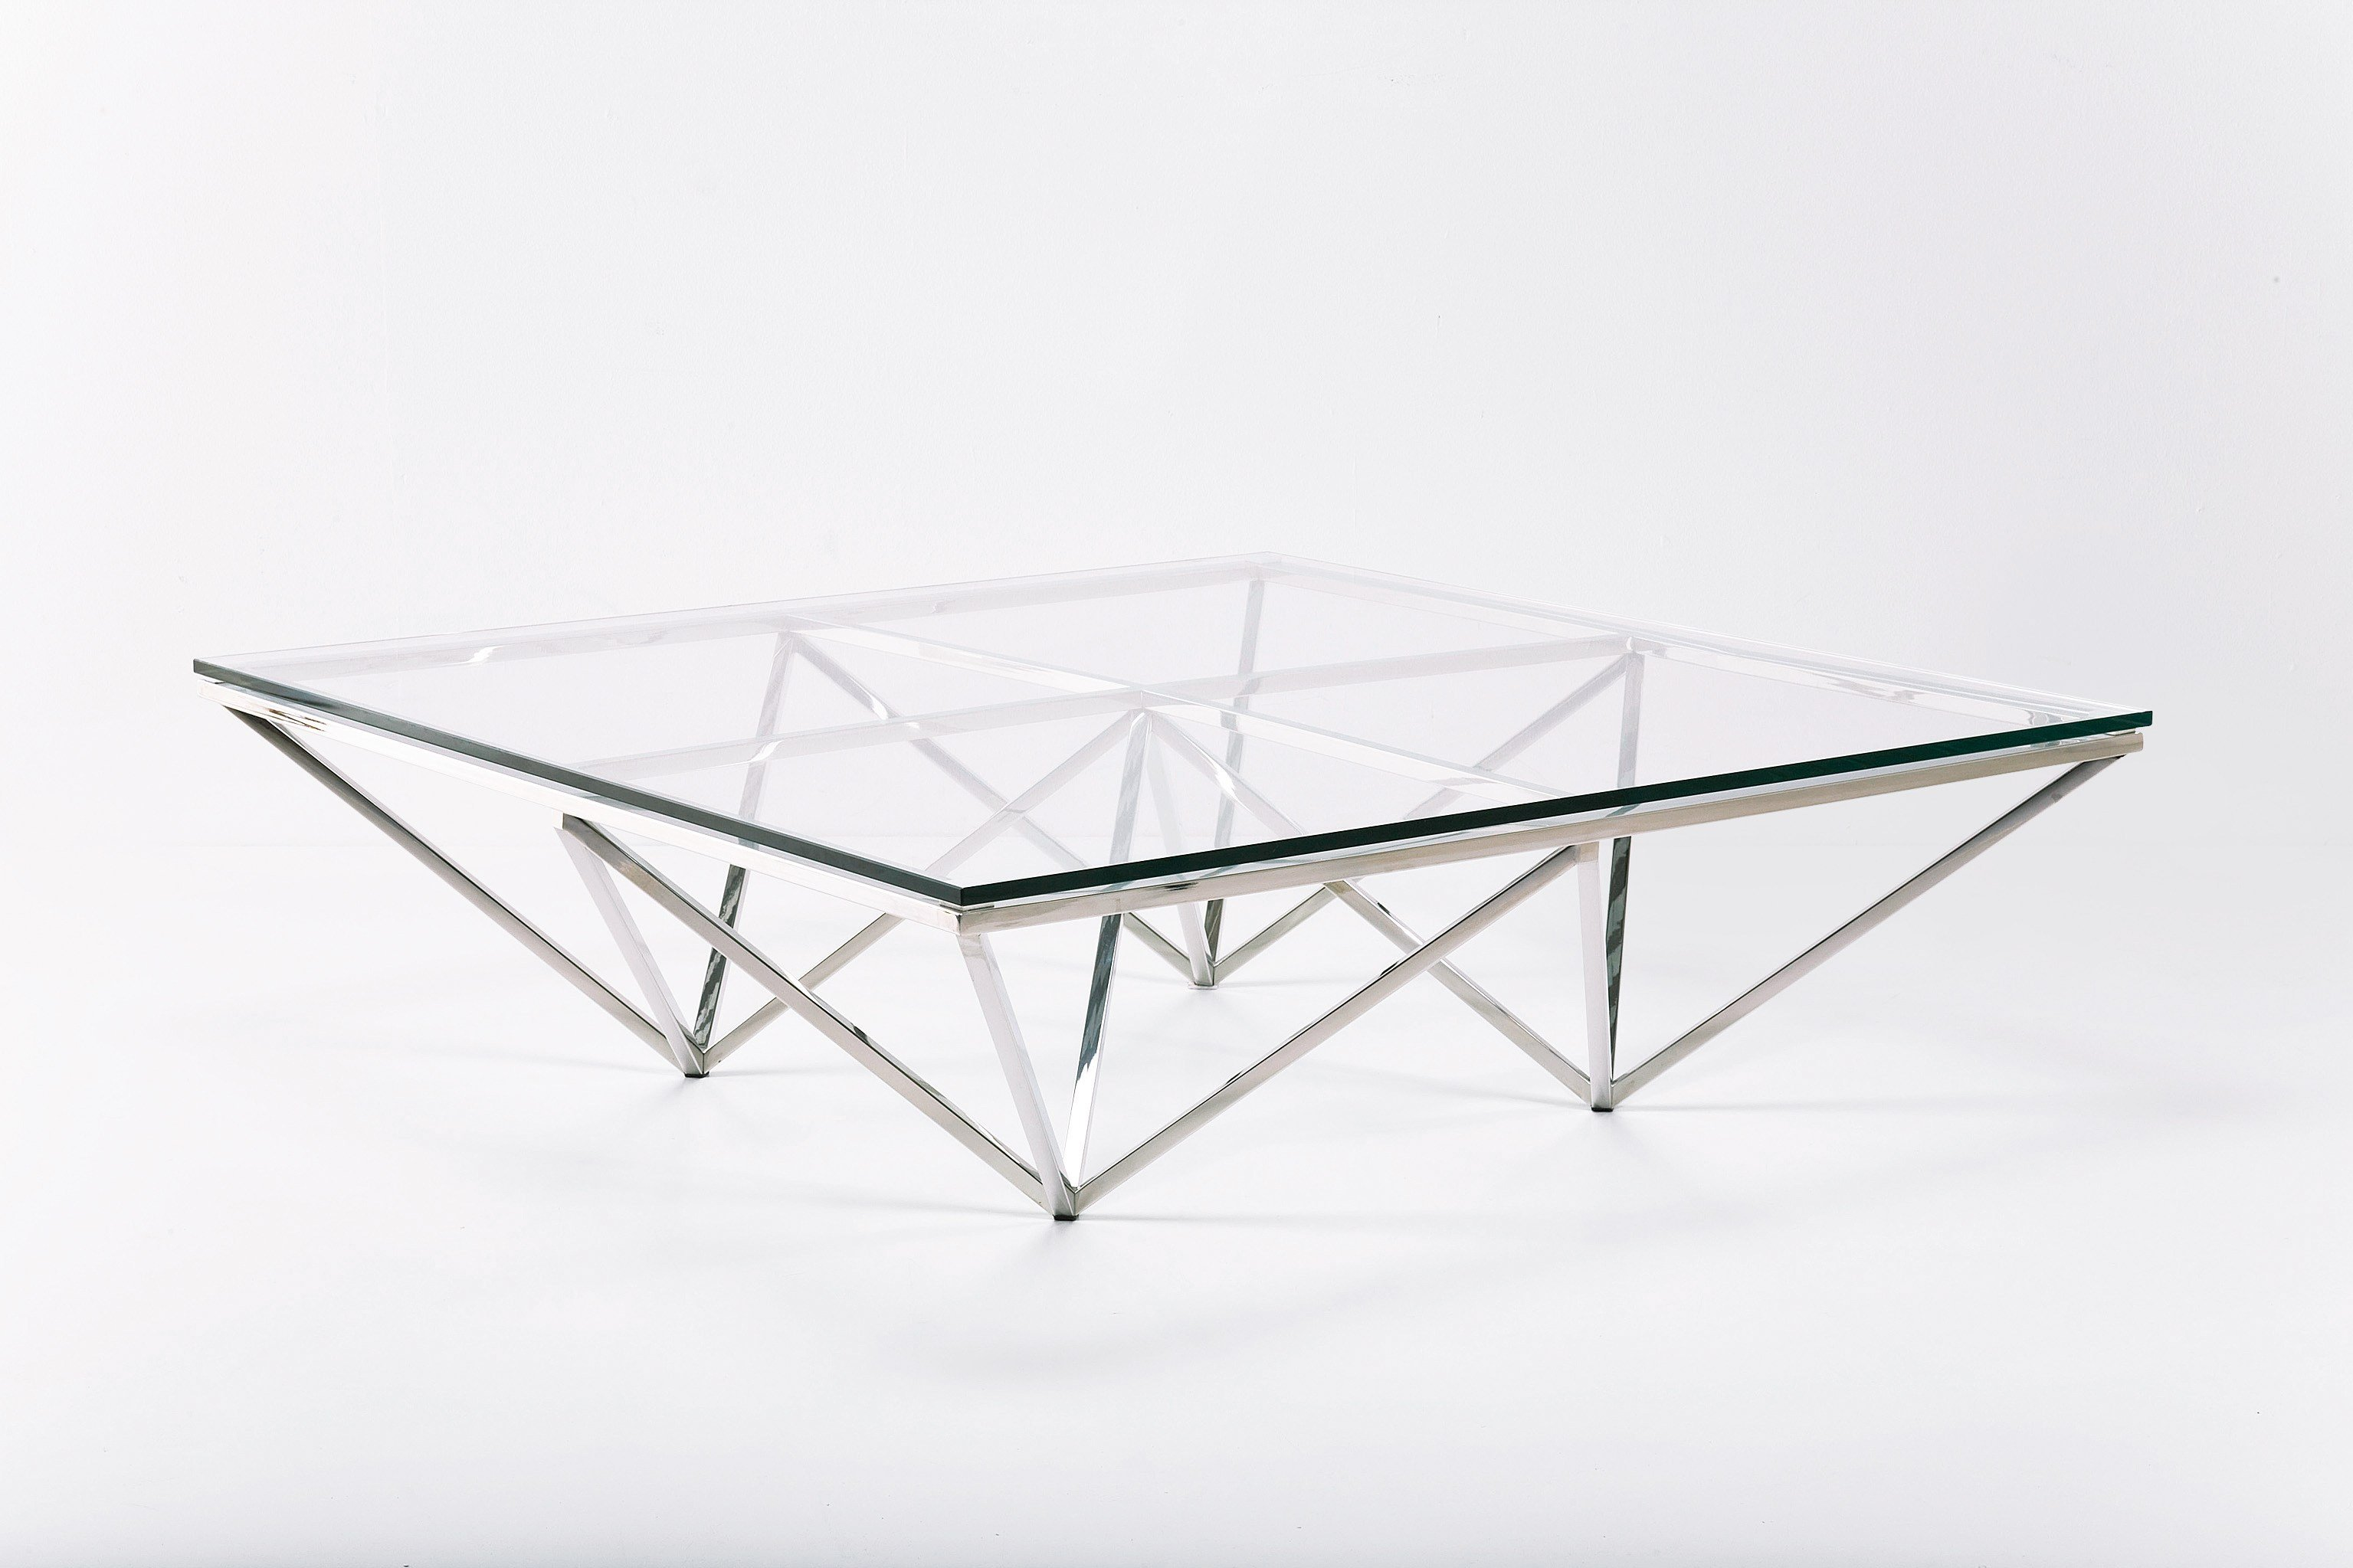 Table de salon en verre network by kare design - Tables basses de salon en verre ...